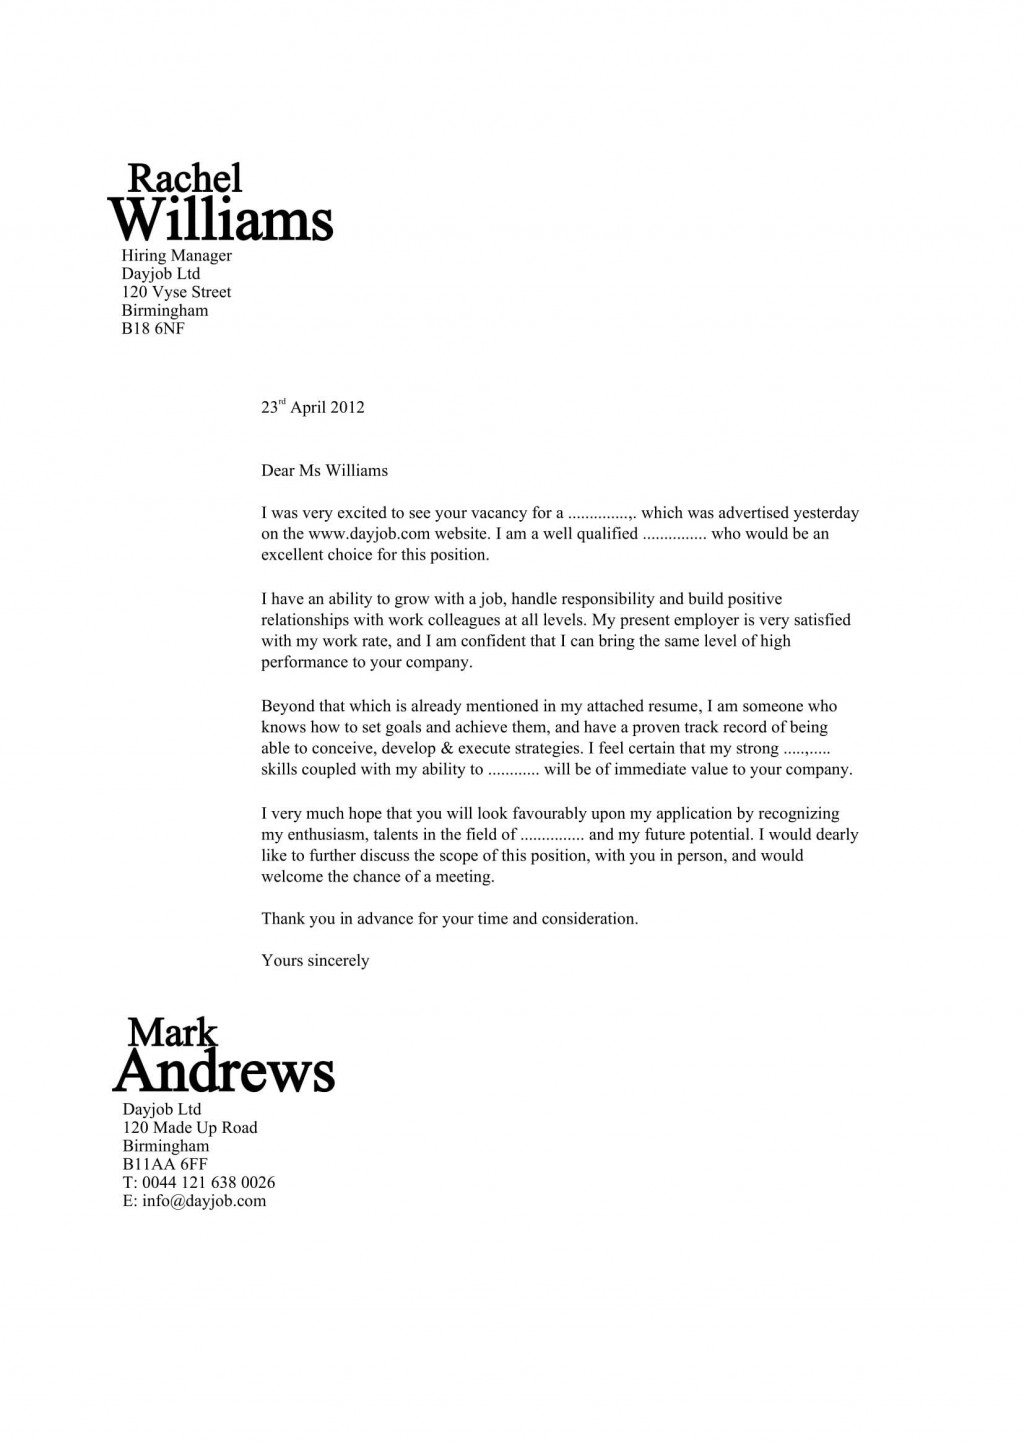 007 Beautiful Best Covering Letter Example Sample  Examples UkLarge